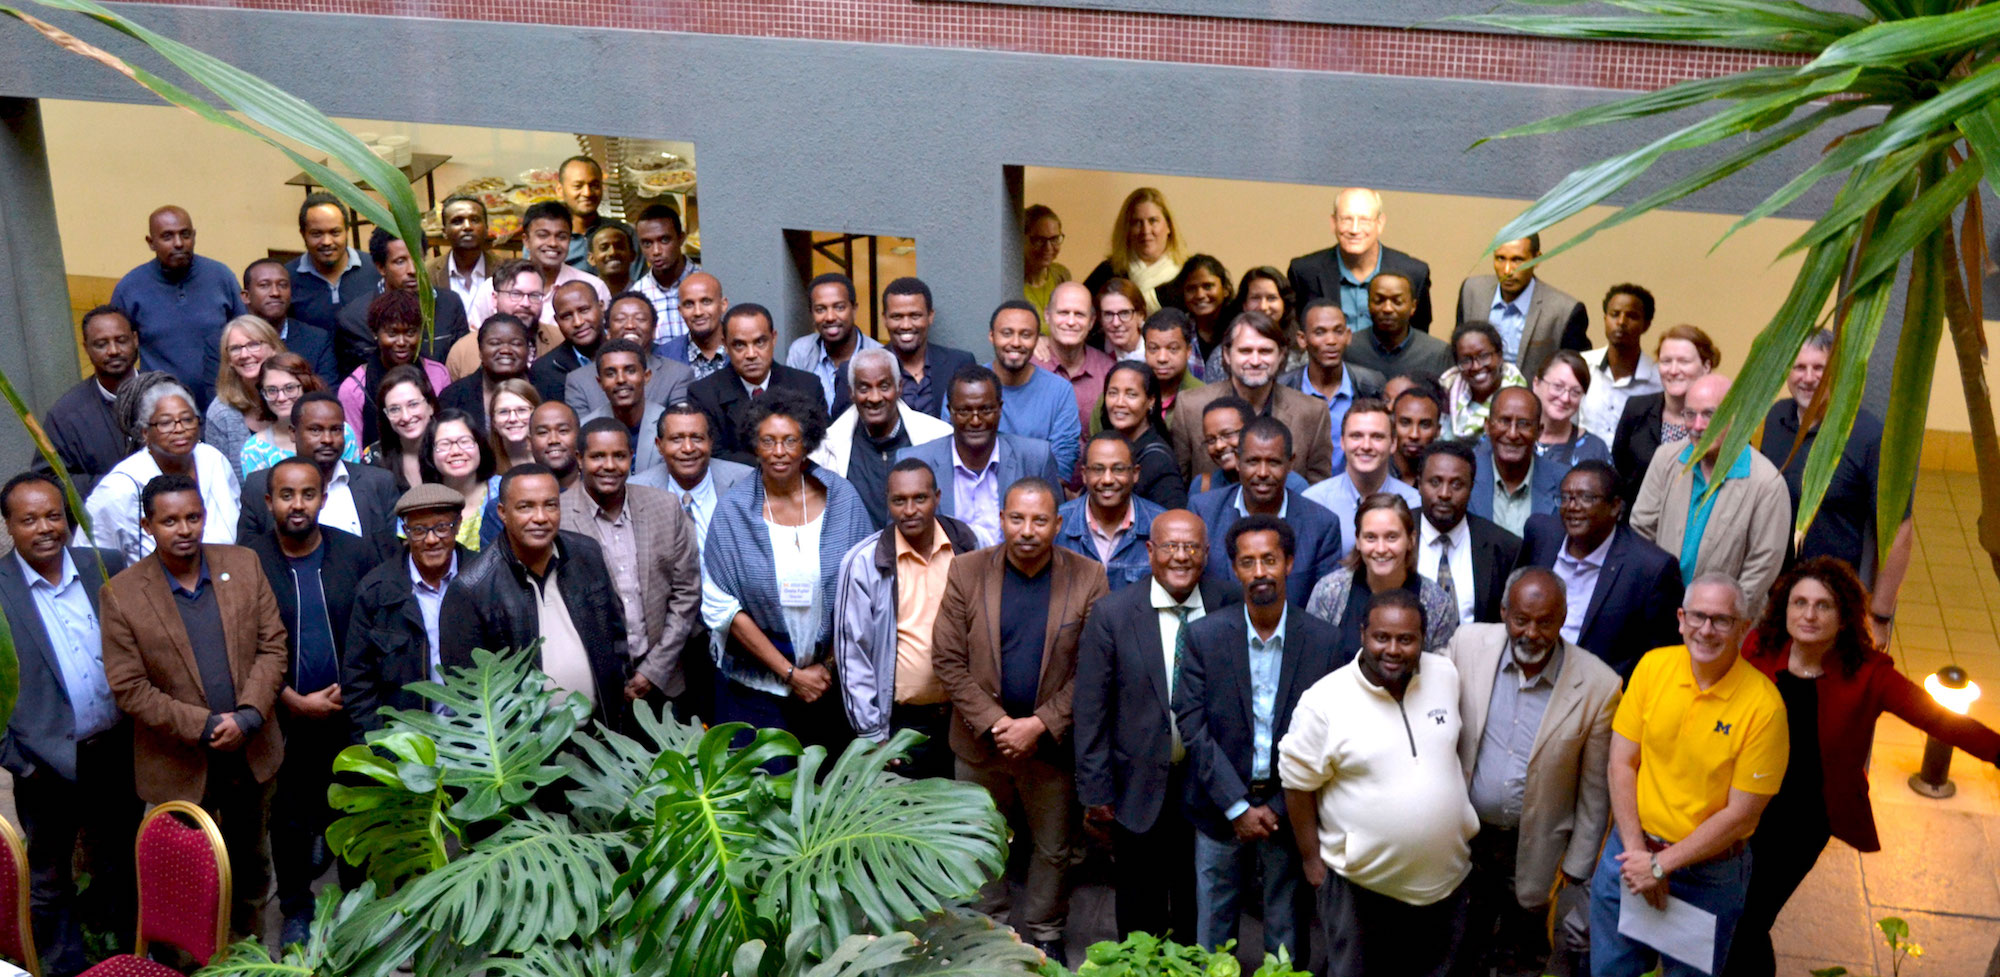 U-M researchers with their partners from various Ethiopian universities and organizations. Image credit: Mandira Banerjee